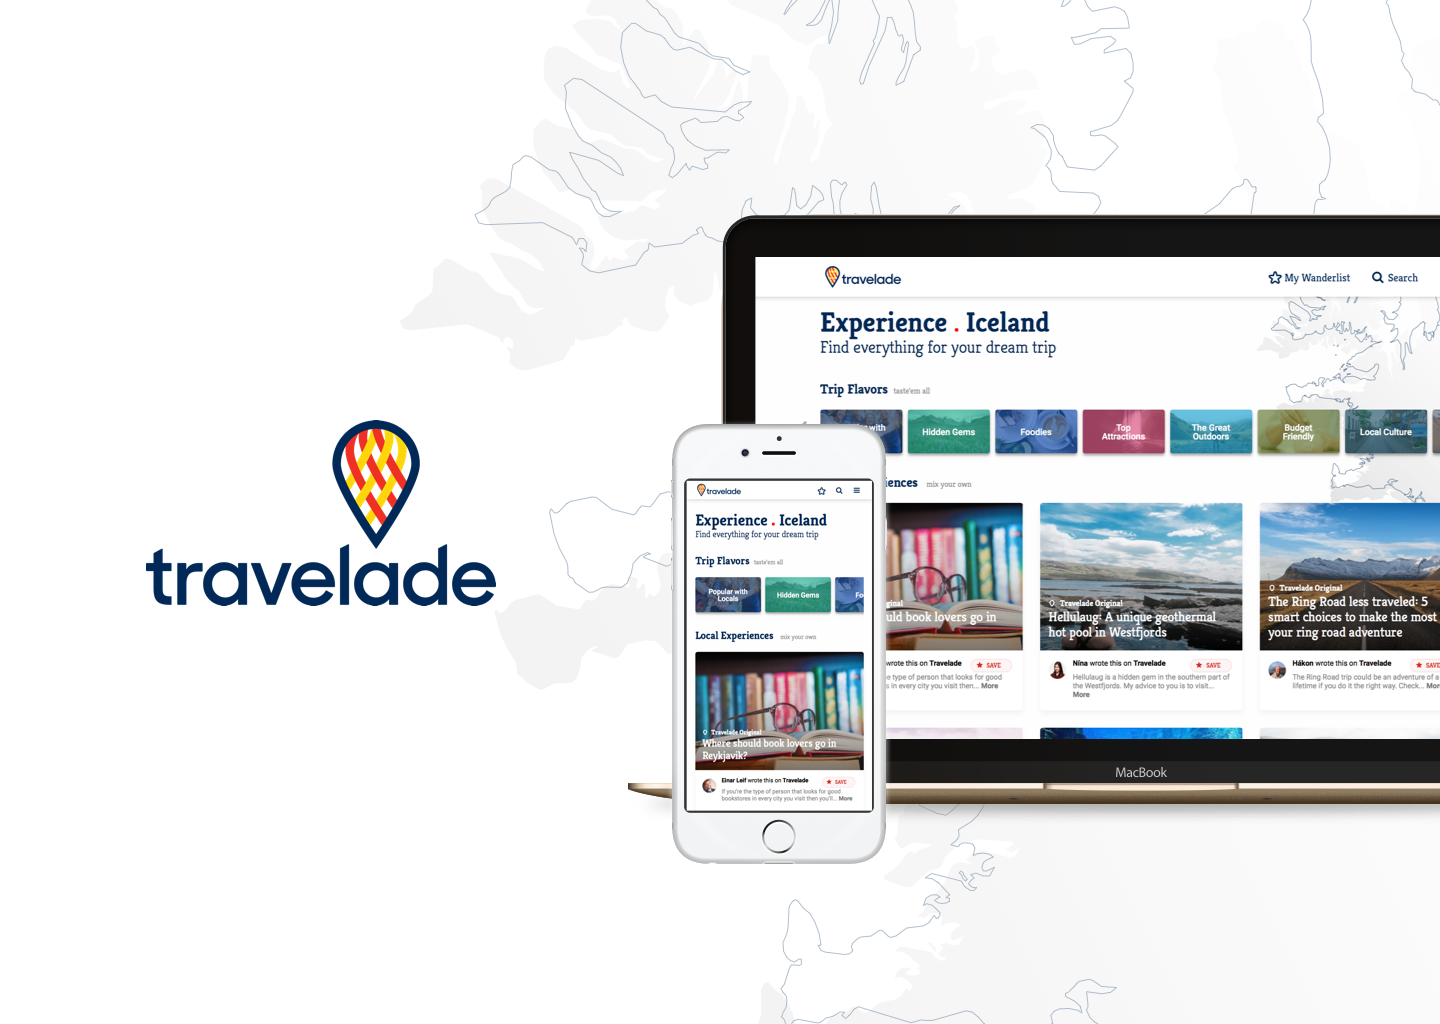 Travelade App for mobile and tablet